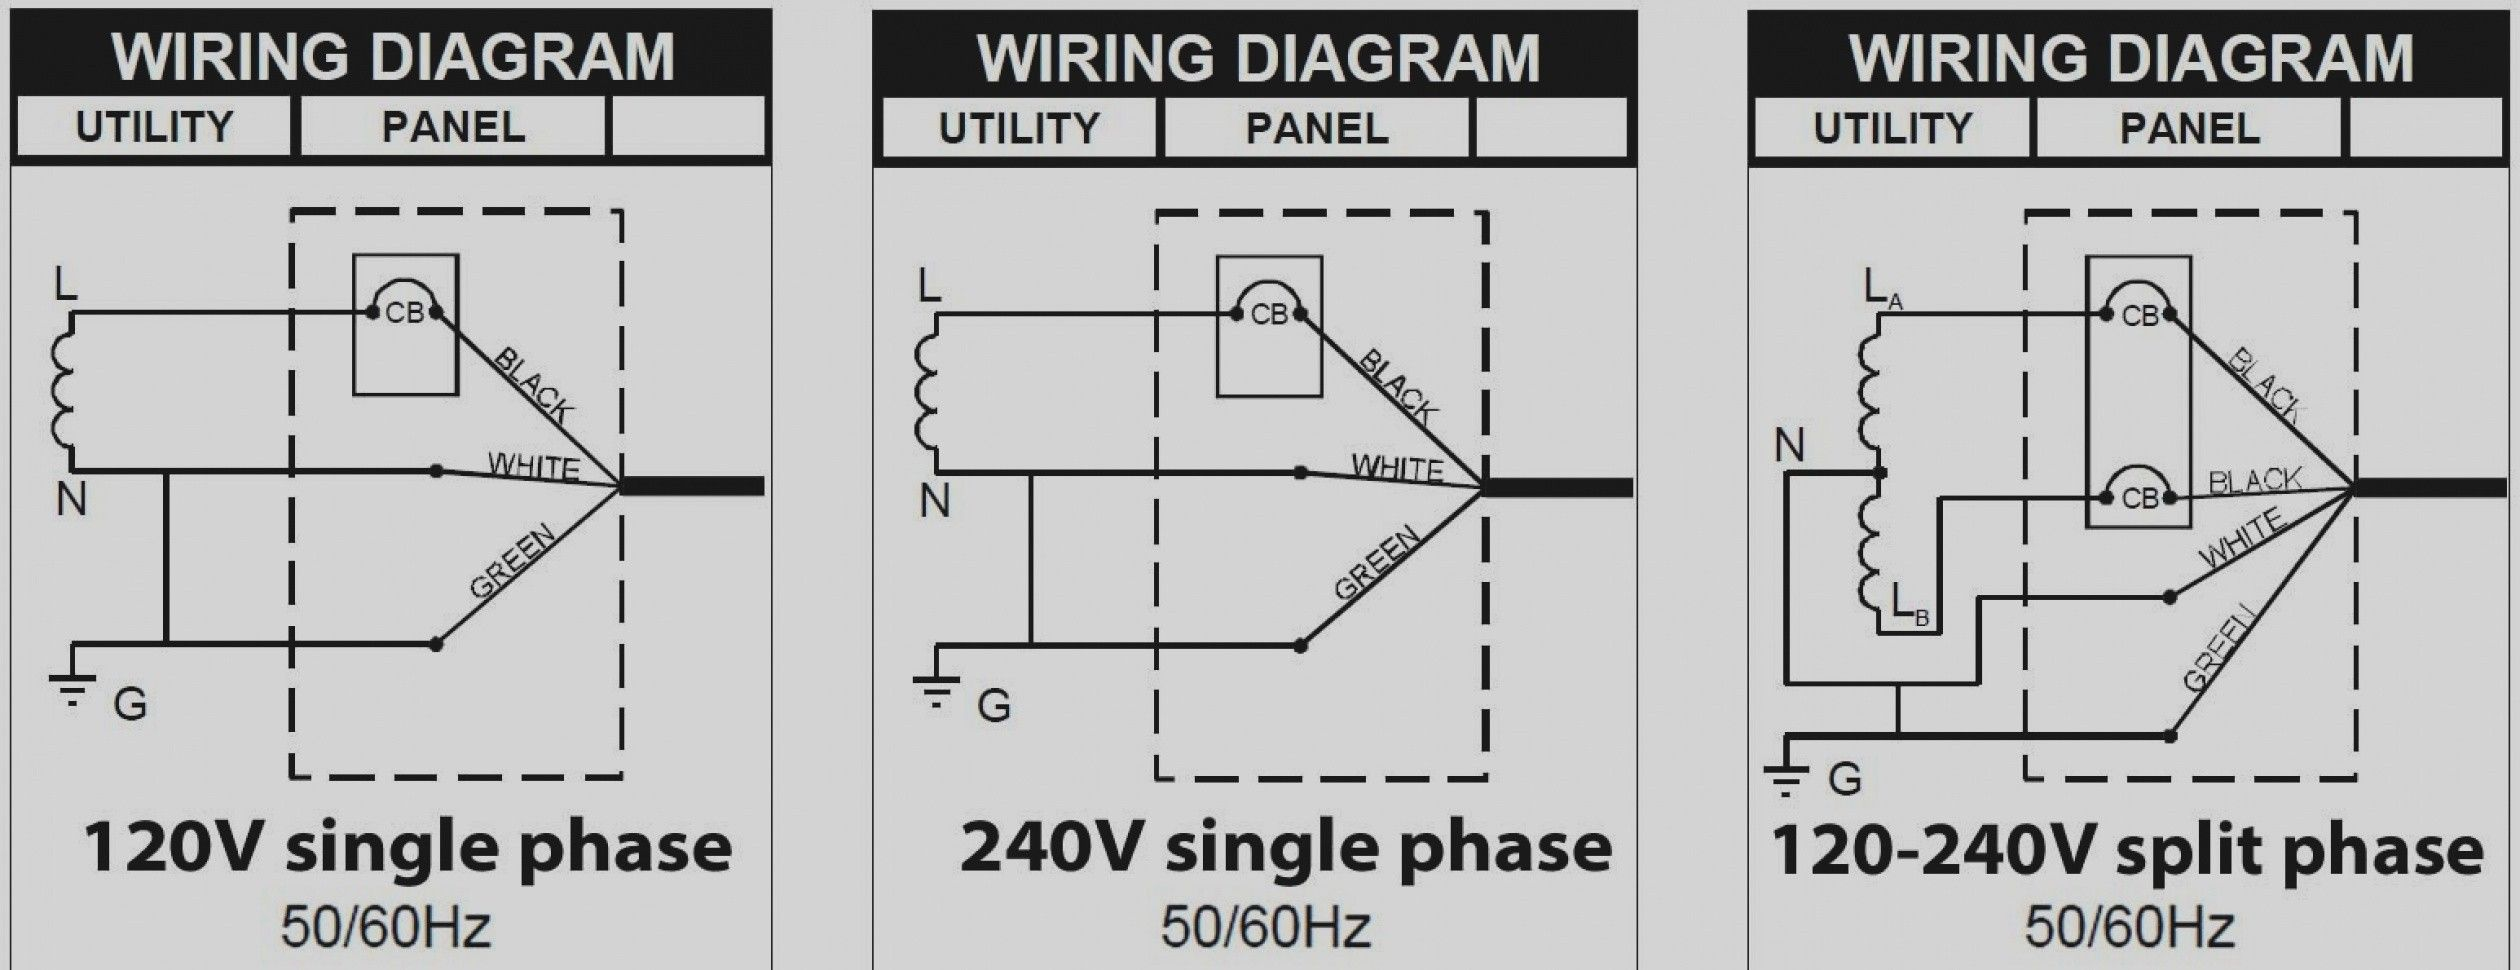 Air Compressor 240v Single Phase Wiring Diagram